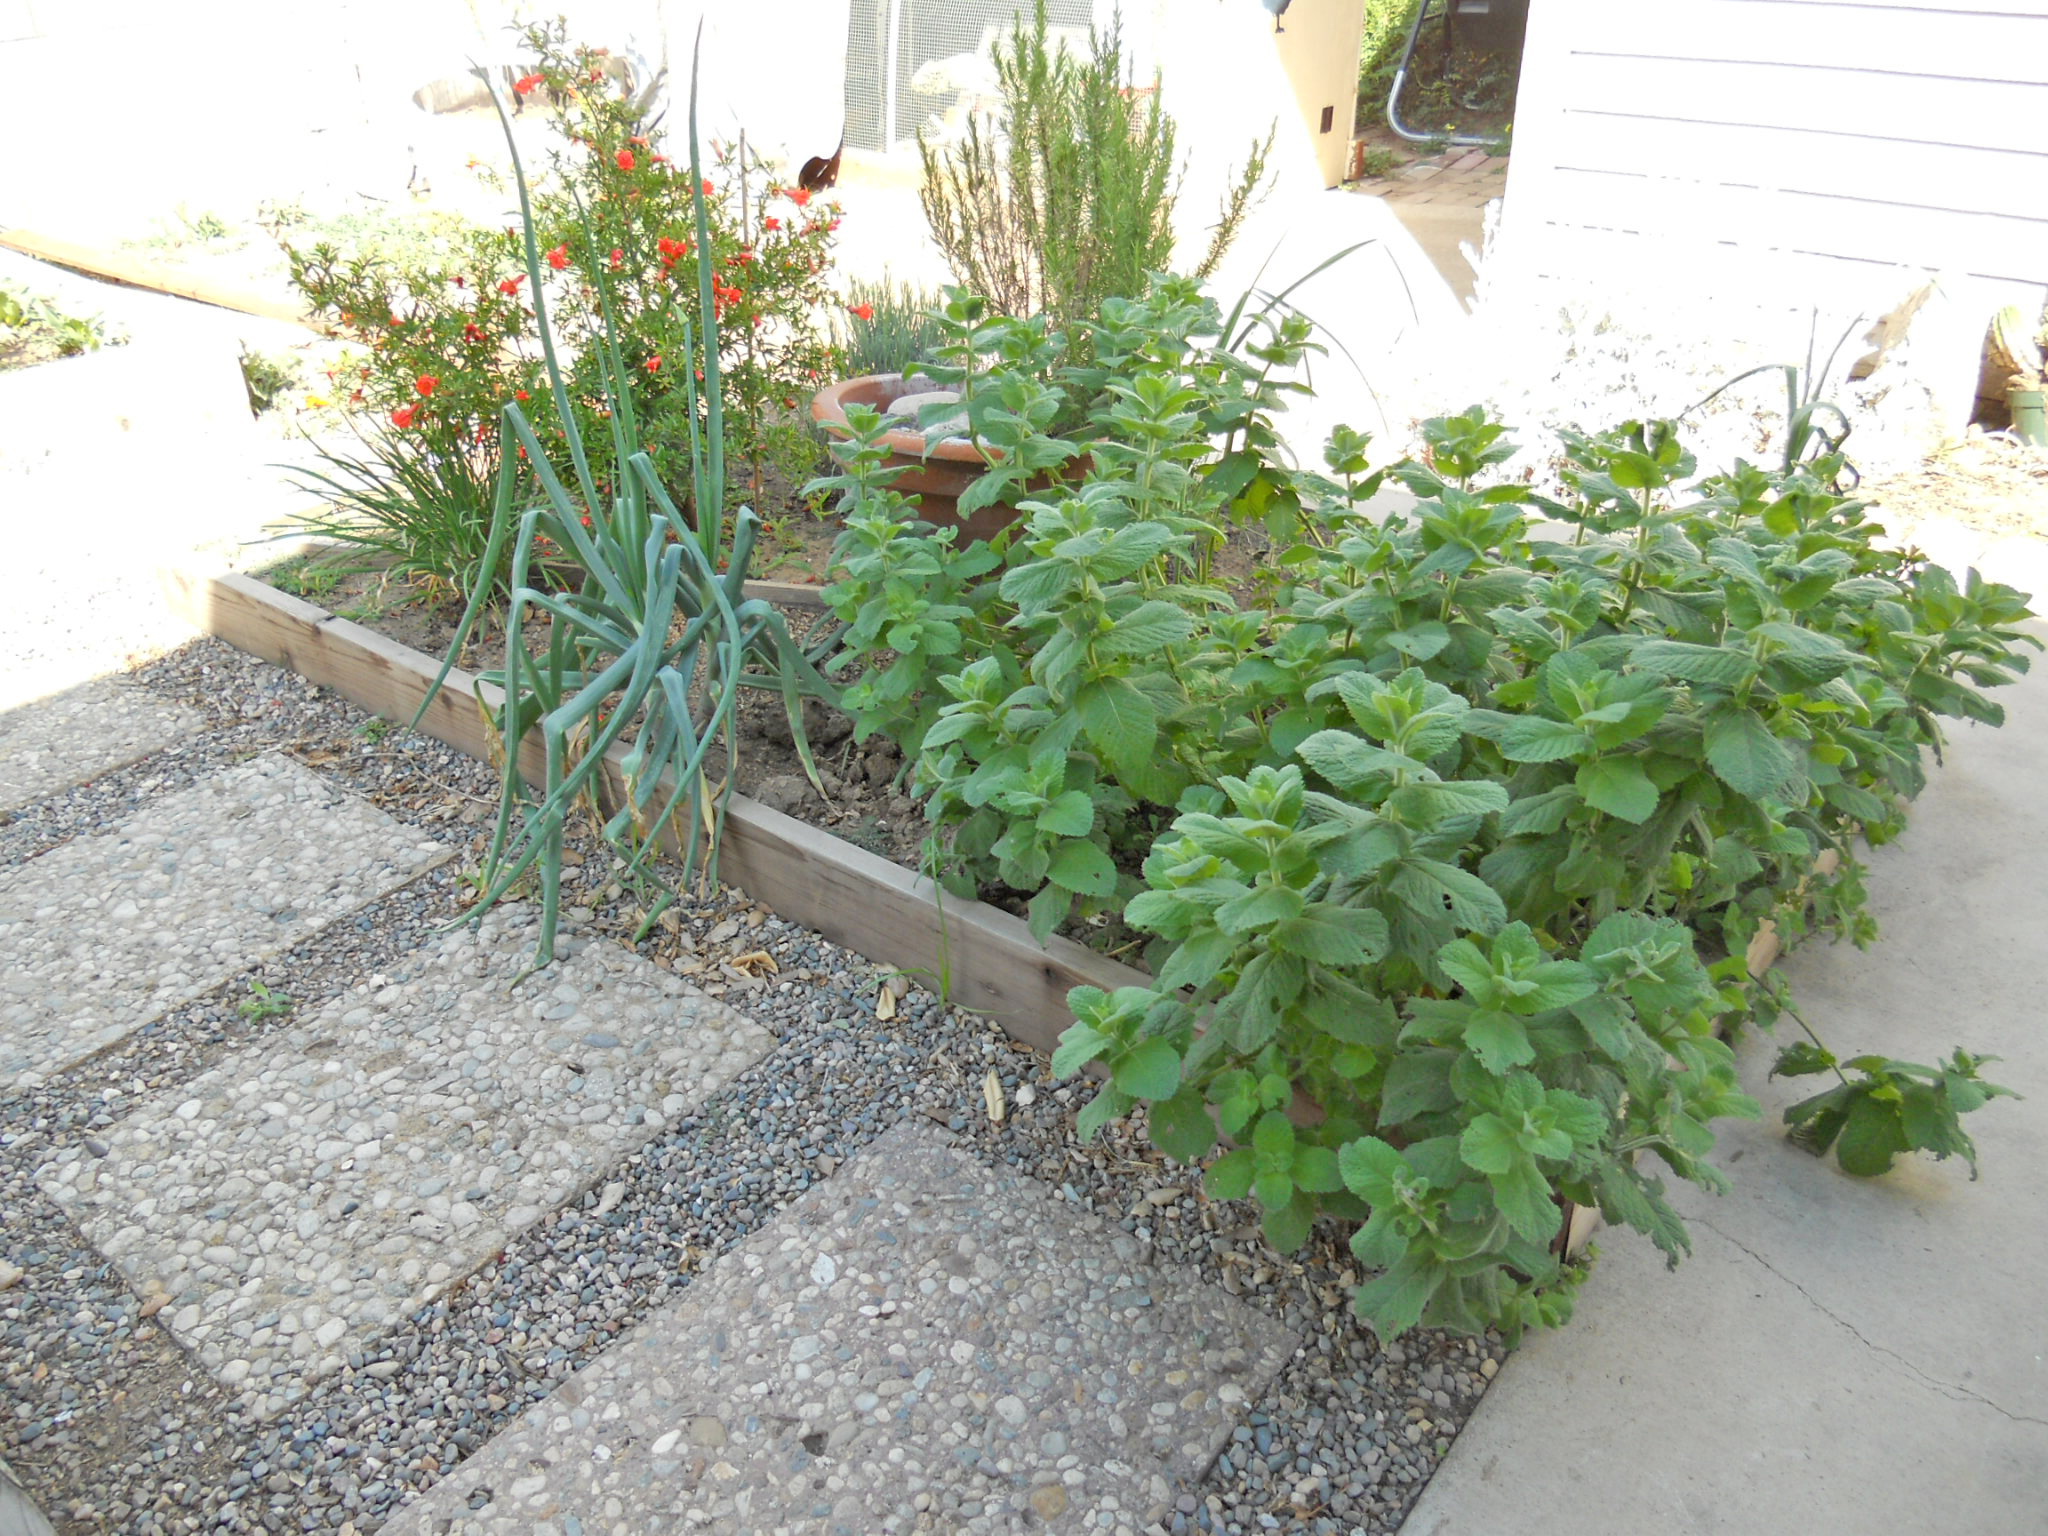 Portion of backyard is comprised of raised bed gardens.